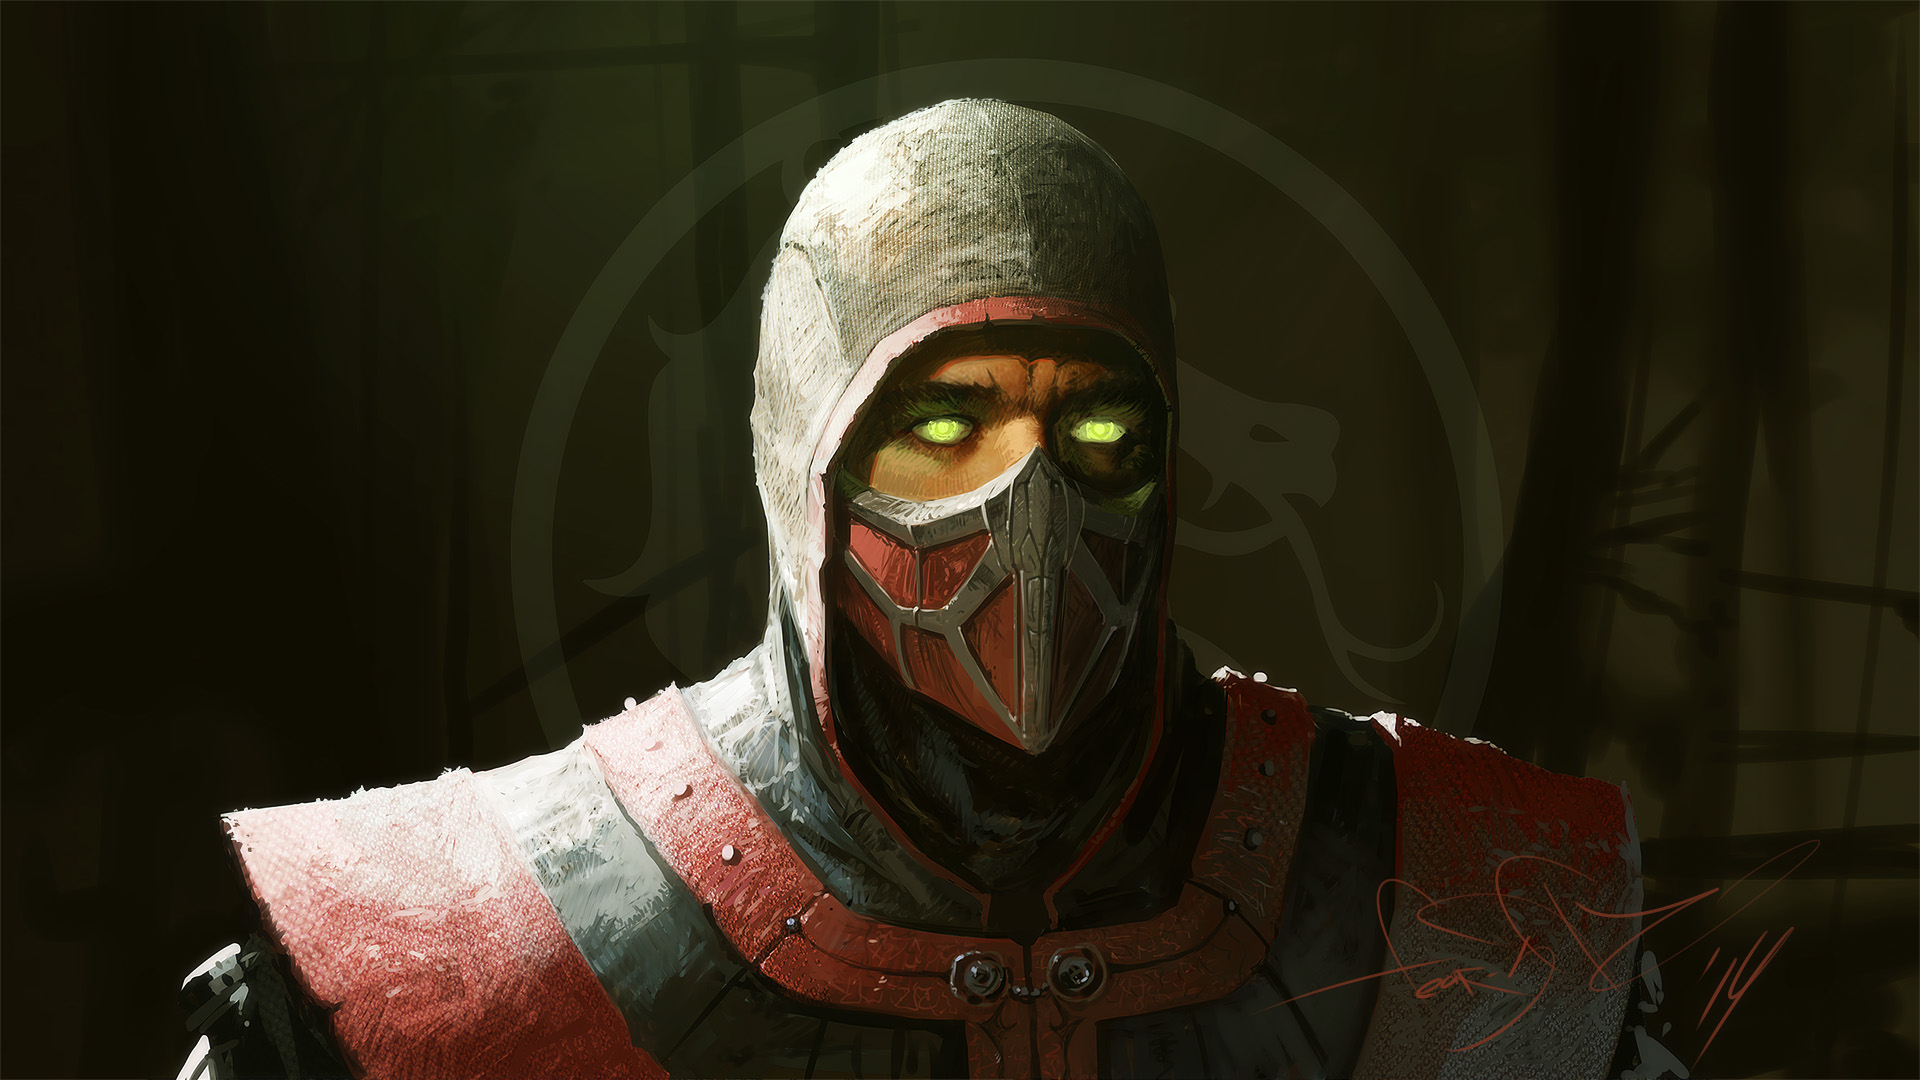 As Ermac MK Mortal Kombat By fear sas Wallpaper 19201080 1920x1080